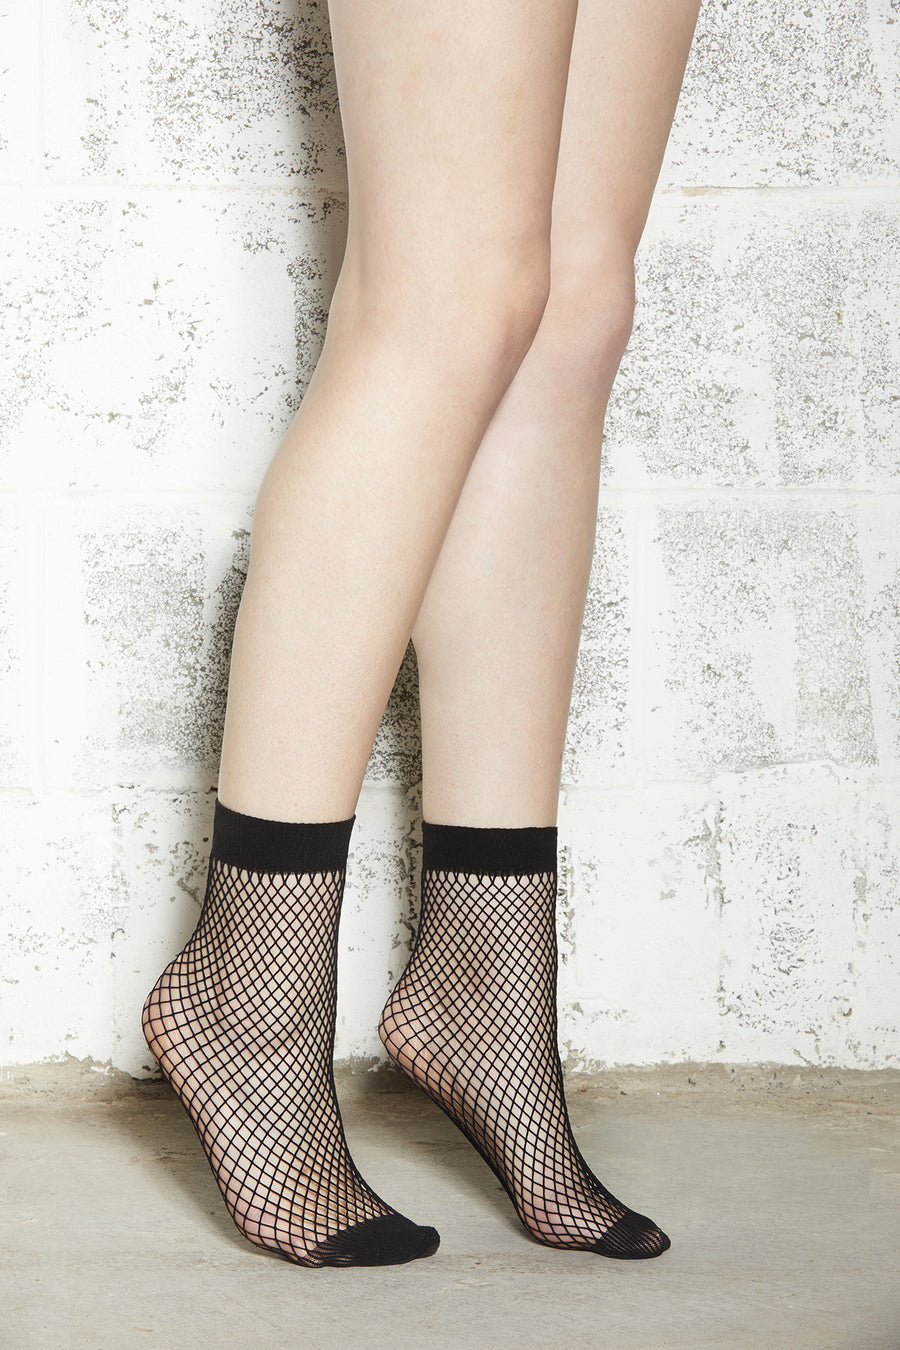 Fishnet Socks - Medium Mesh, Black - Extraordinary Ordinary Day